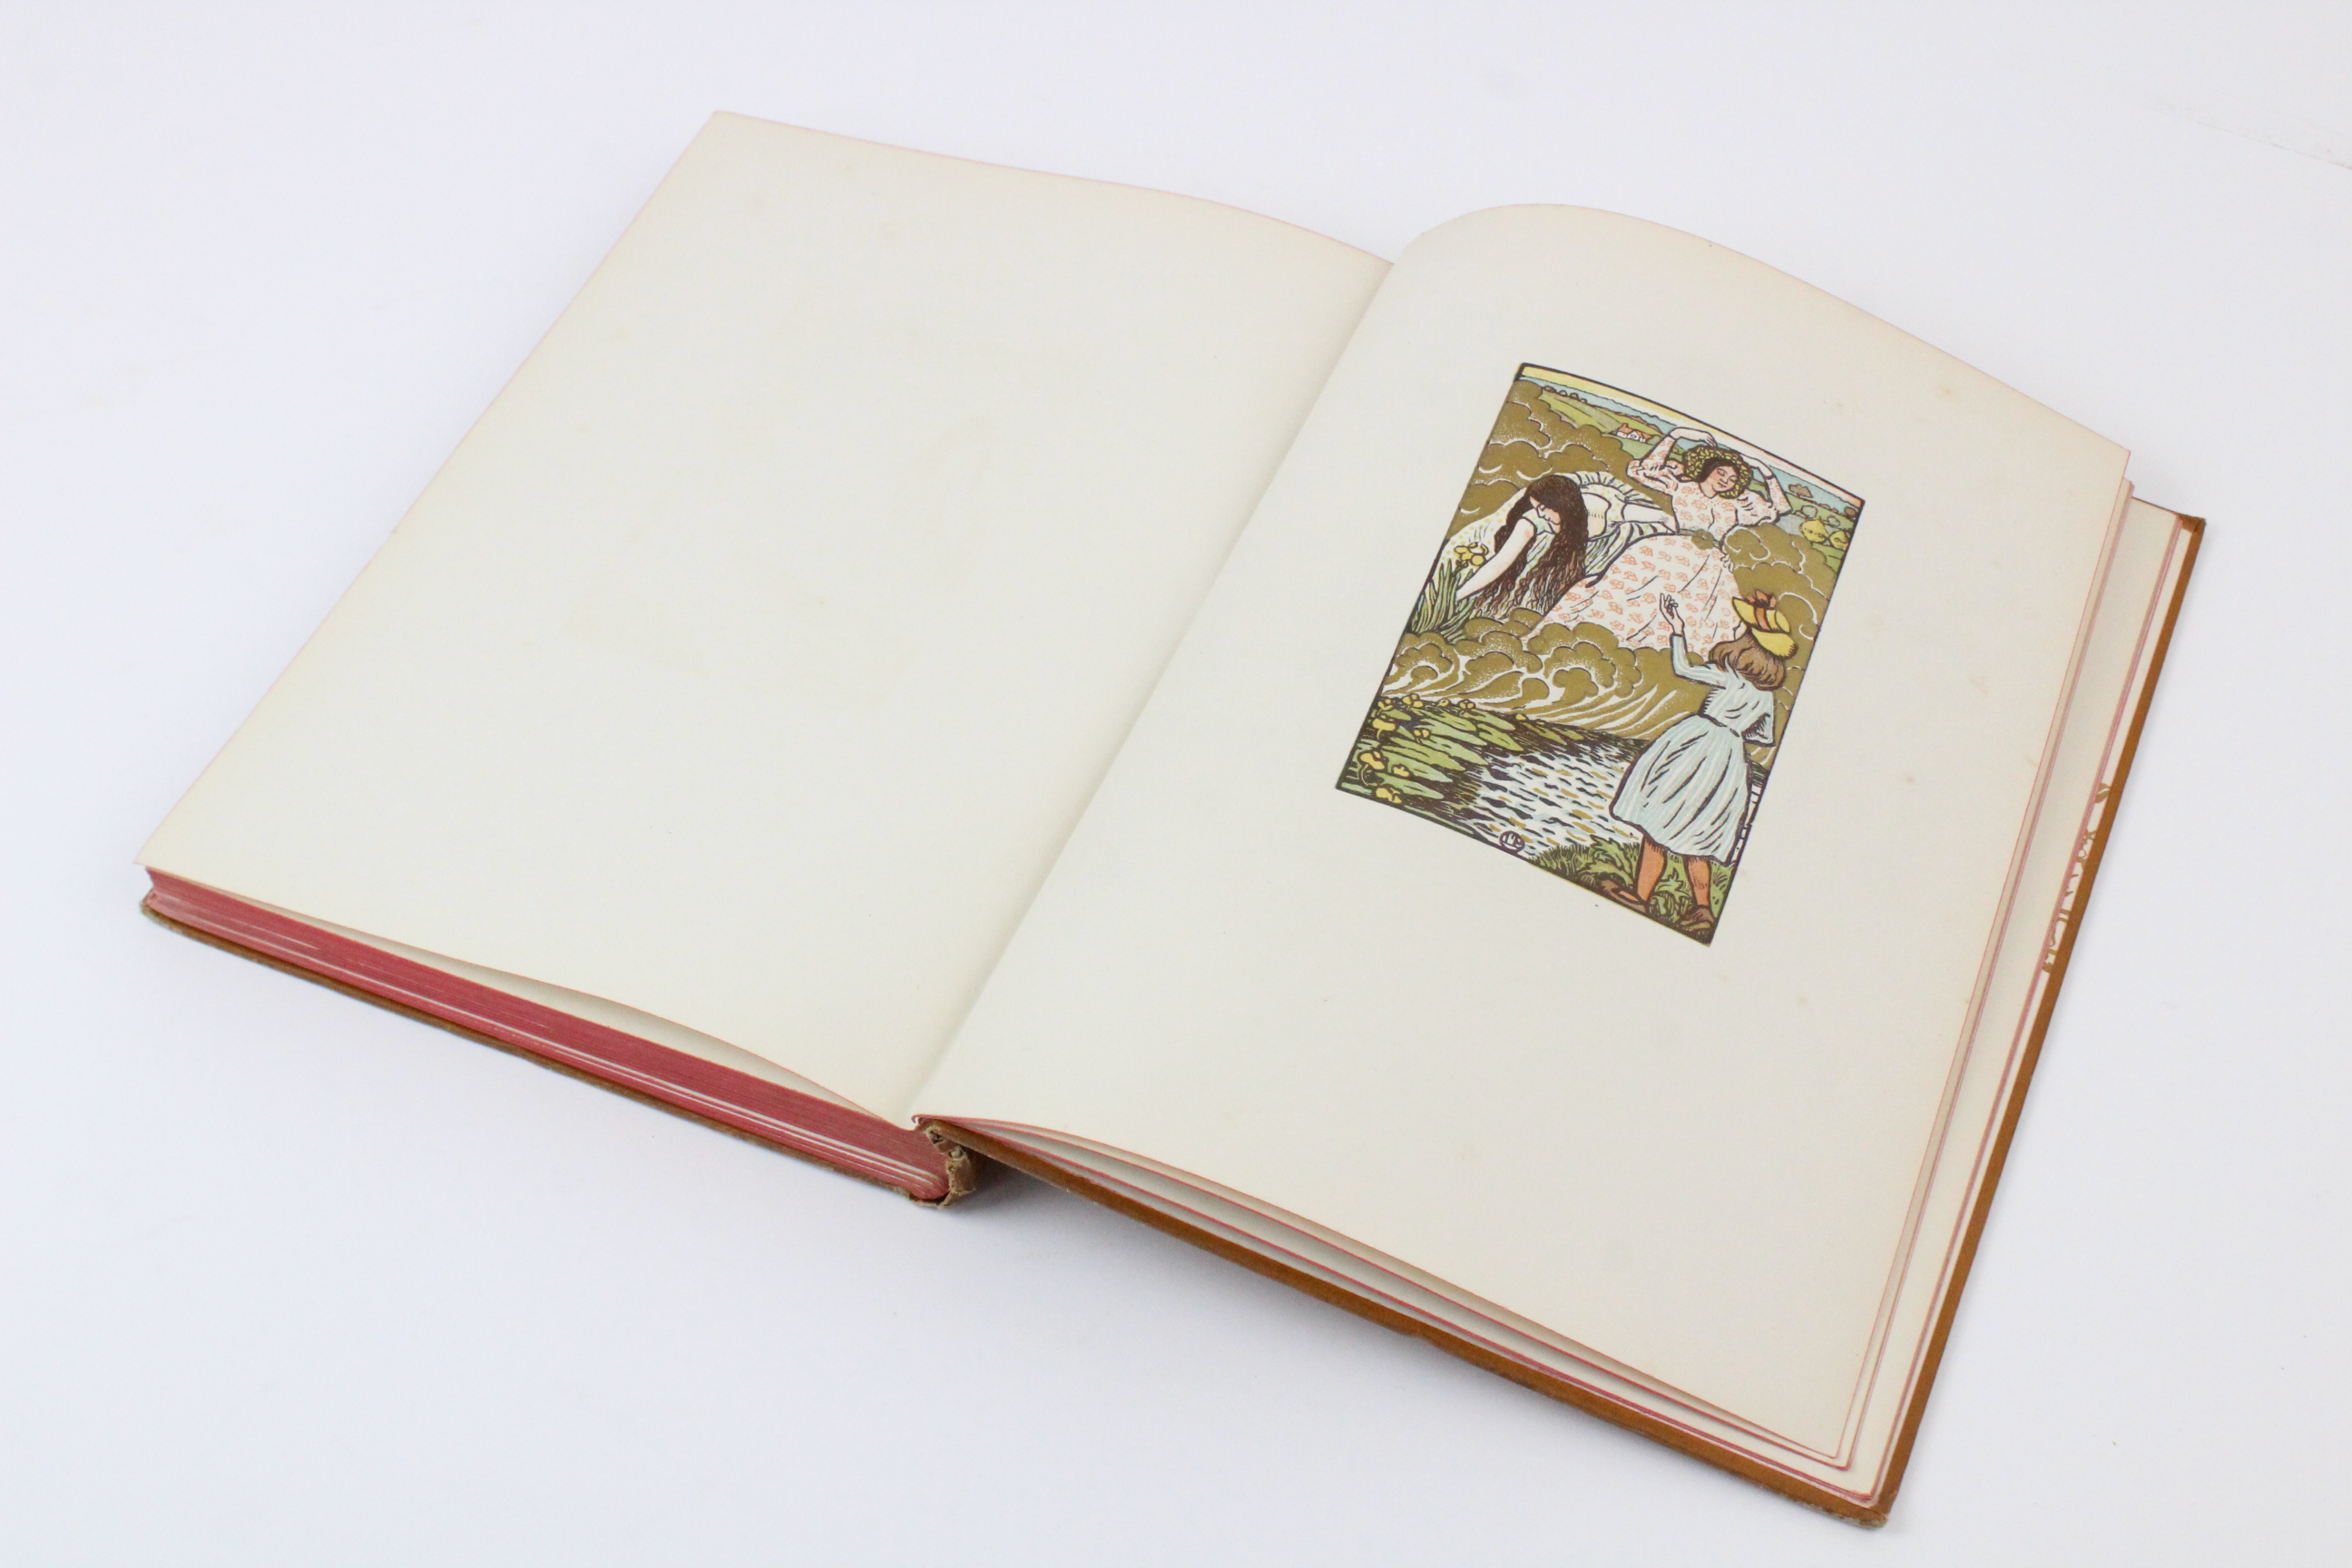 Hazelwood (C) et al, THE PAGEANT, 1897 edition, illustrated red boards, illustrated endpapers, - Image 3 of 16